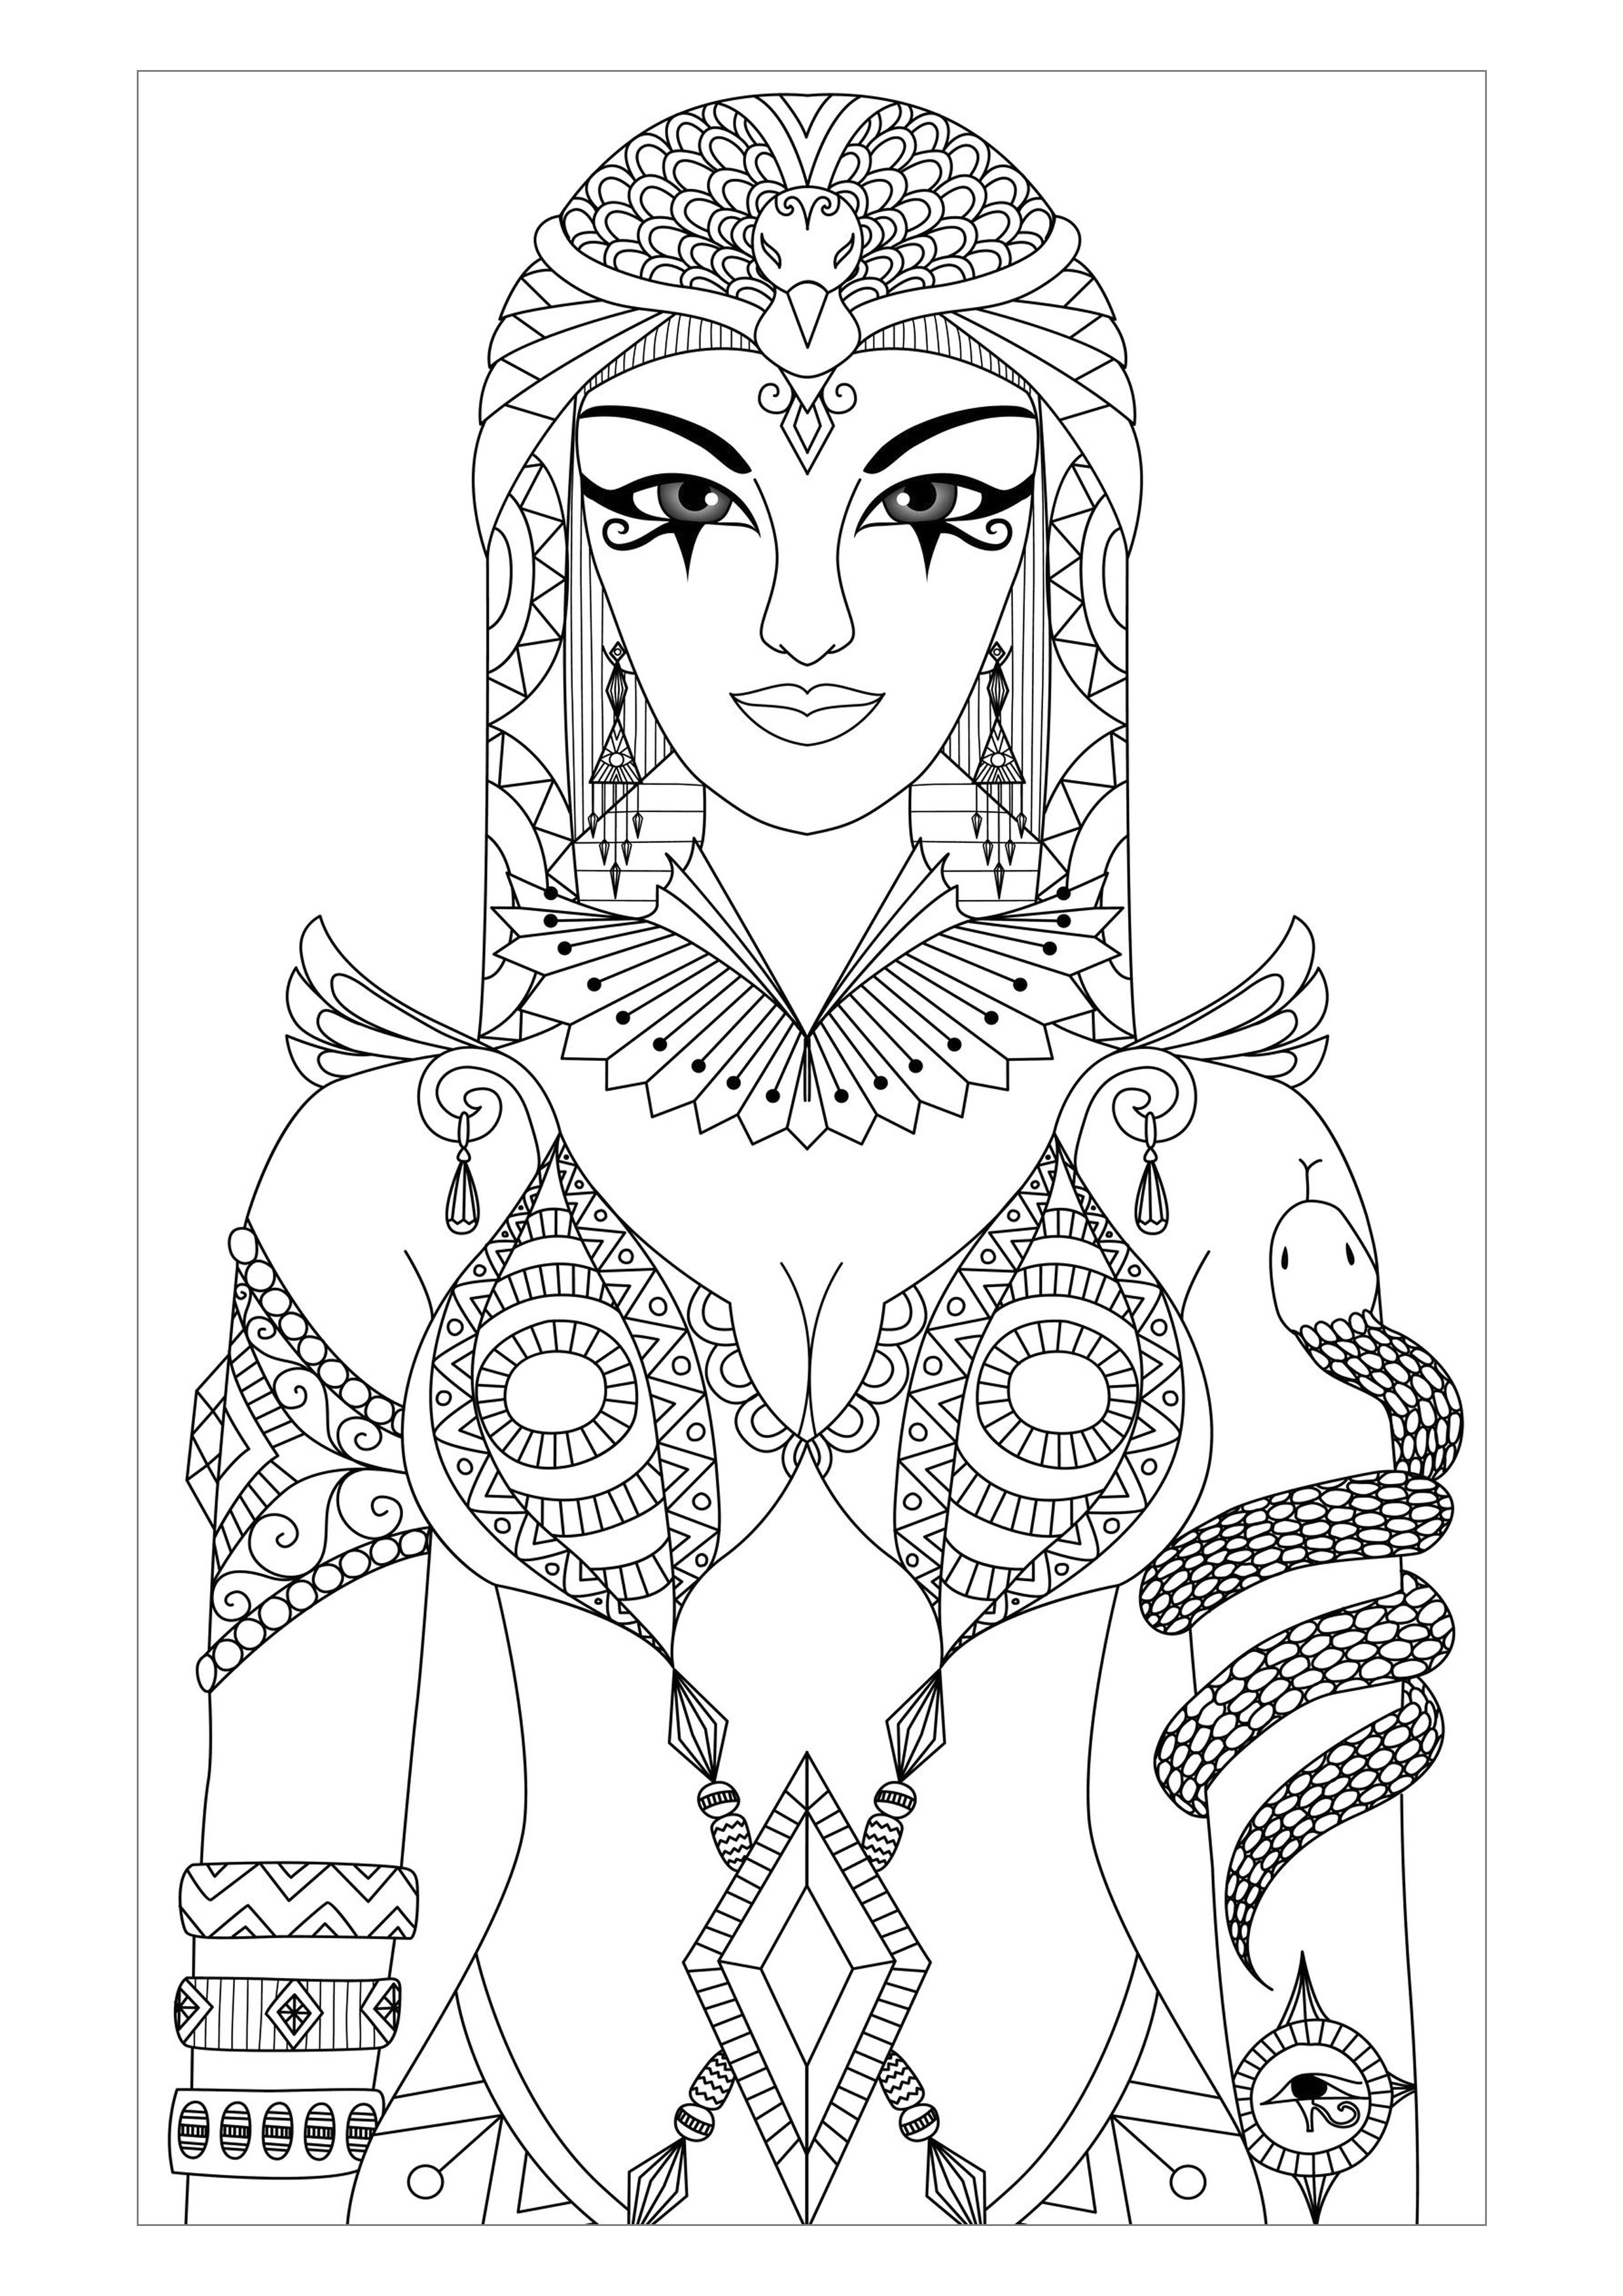 cleopatra coloring page egypt hieroglyphs coloring pages for adults coloring cleopatra page coloring